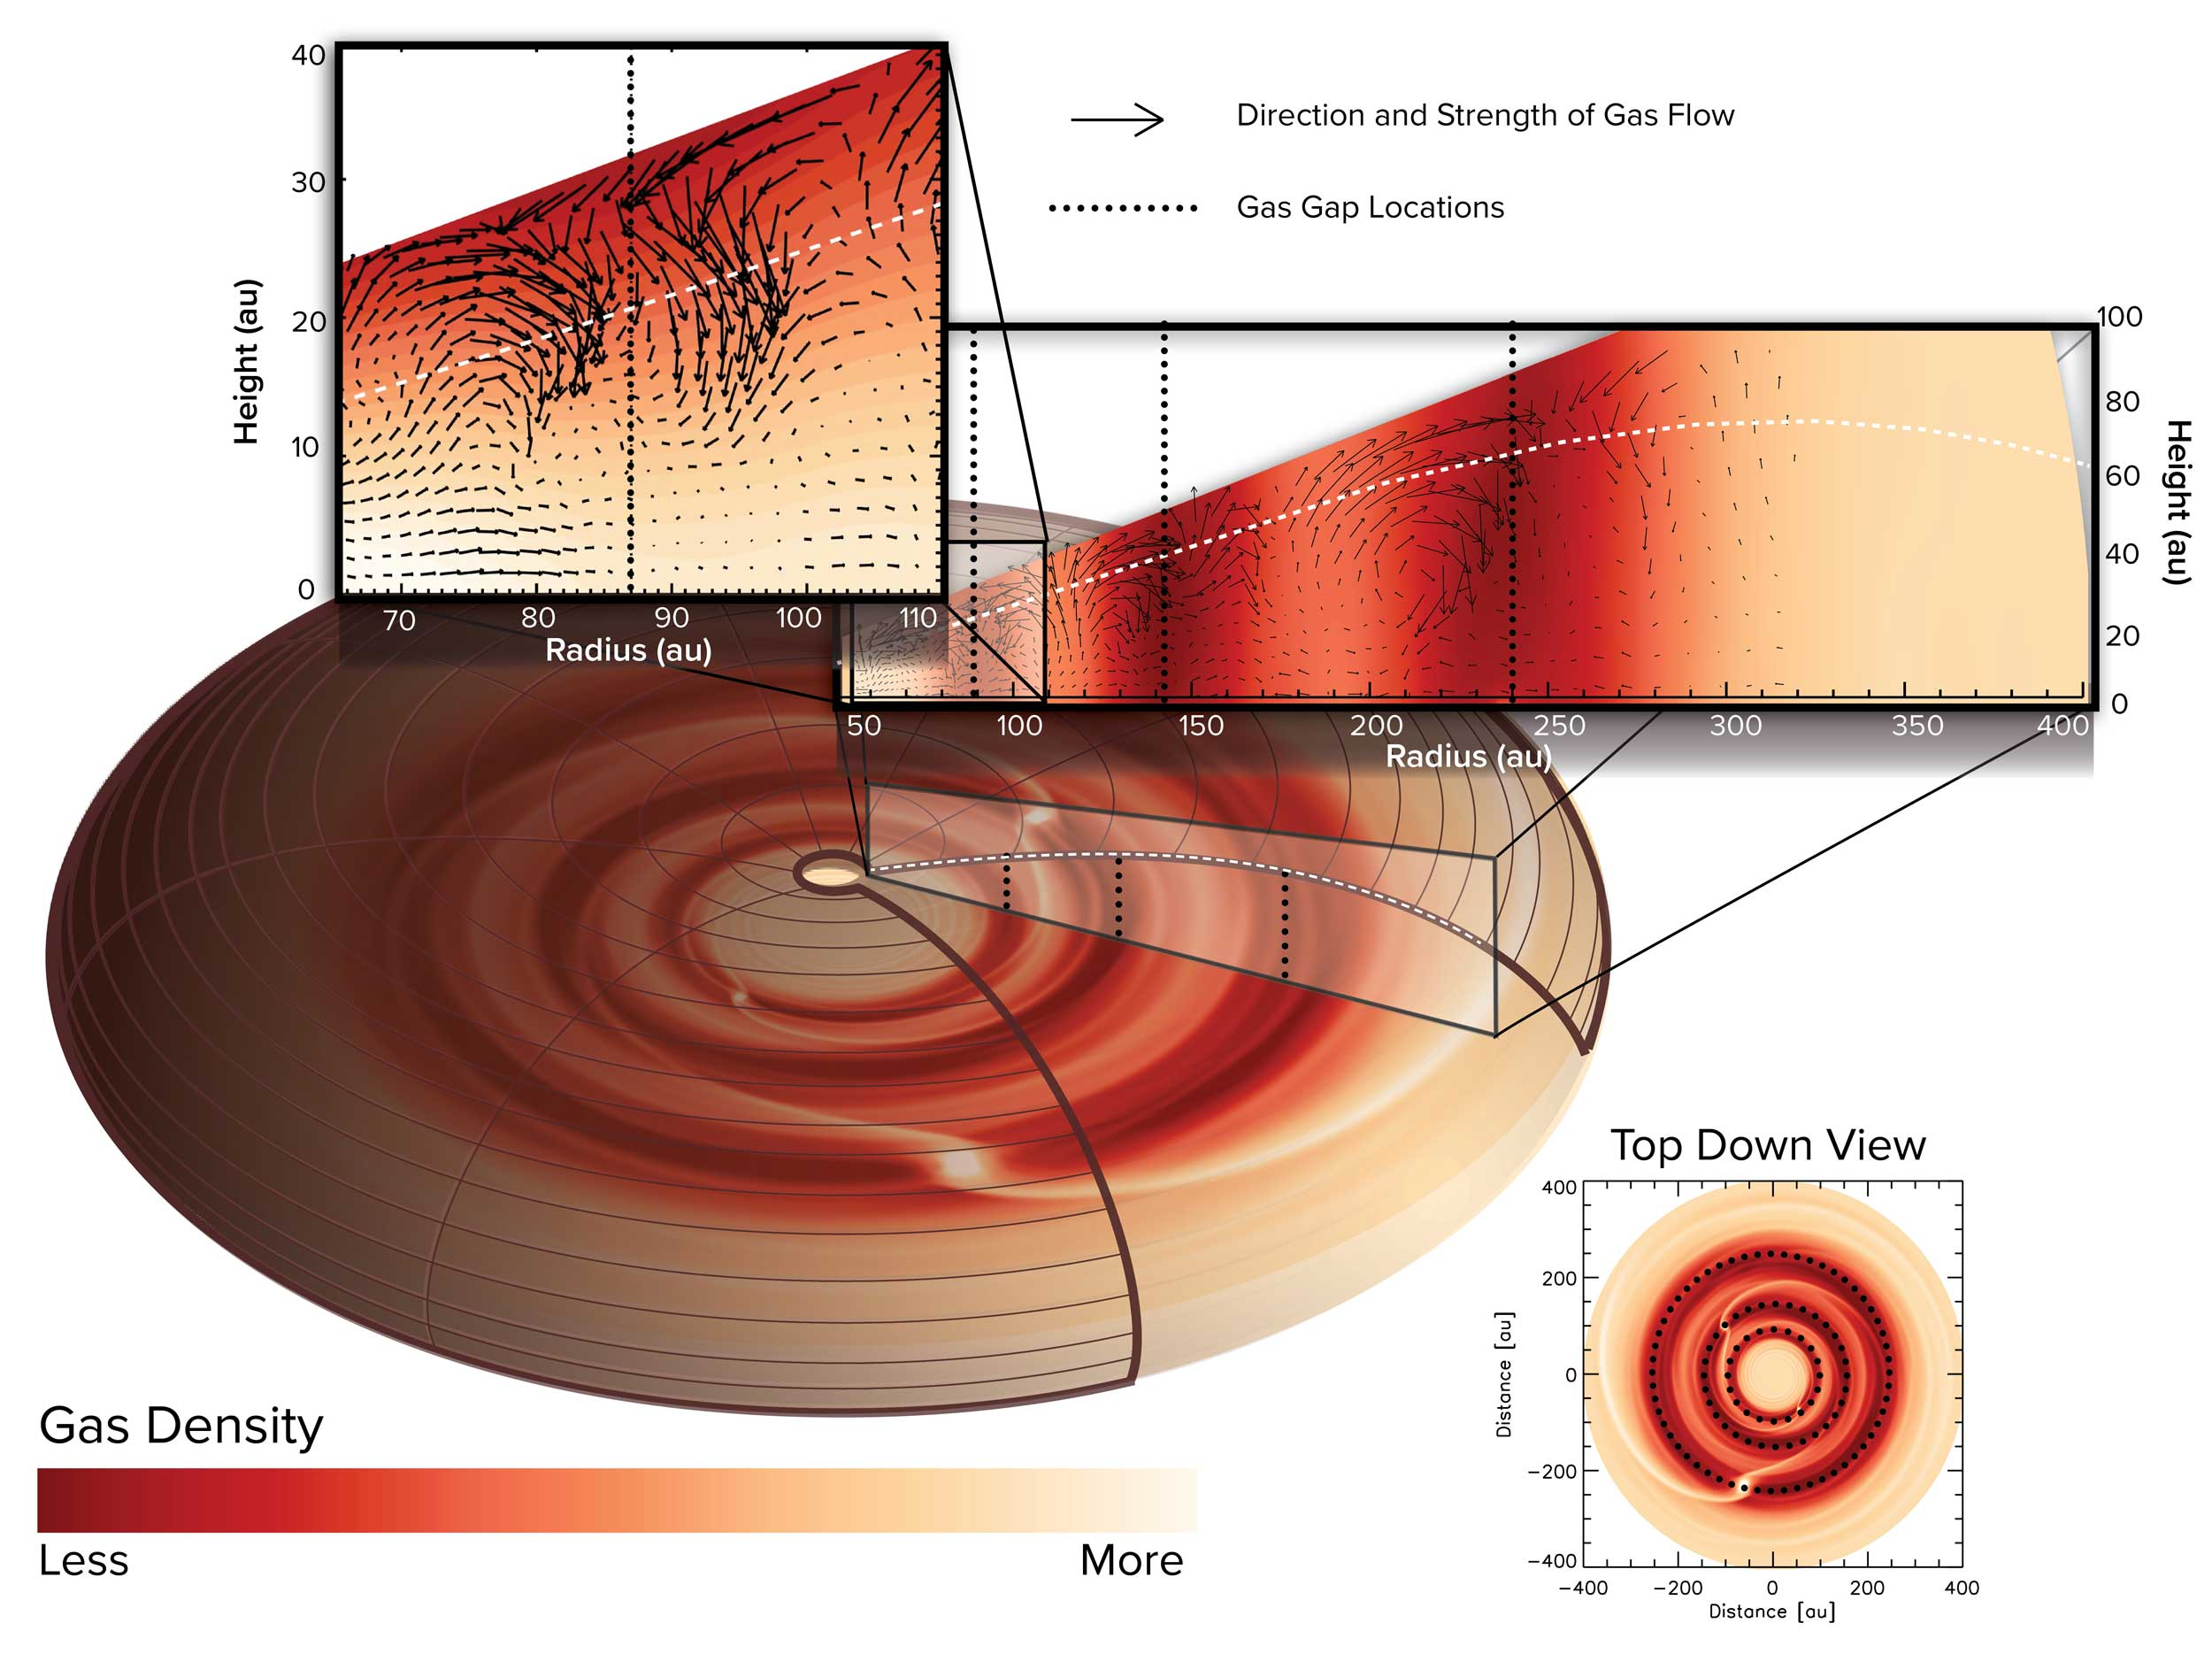 A computer simulation showed that the patterns of gas flows are unique and are most likely caused by planets in three locations in the disk. Planets in orbit around the star push the gas and dust aside, opening gaps. The gas above the gaps collapses into it like a waterfall, causing a rotational flow of gas in the disk. Image credit: ALMA (ESO/NAOJ/NRAO), J. Bae; NRAO/AUI/NSF, S. Dagnello